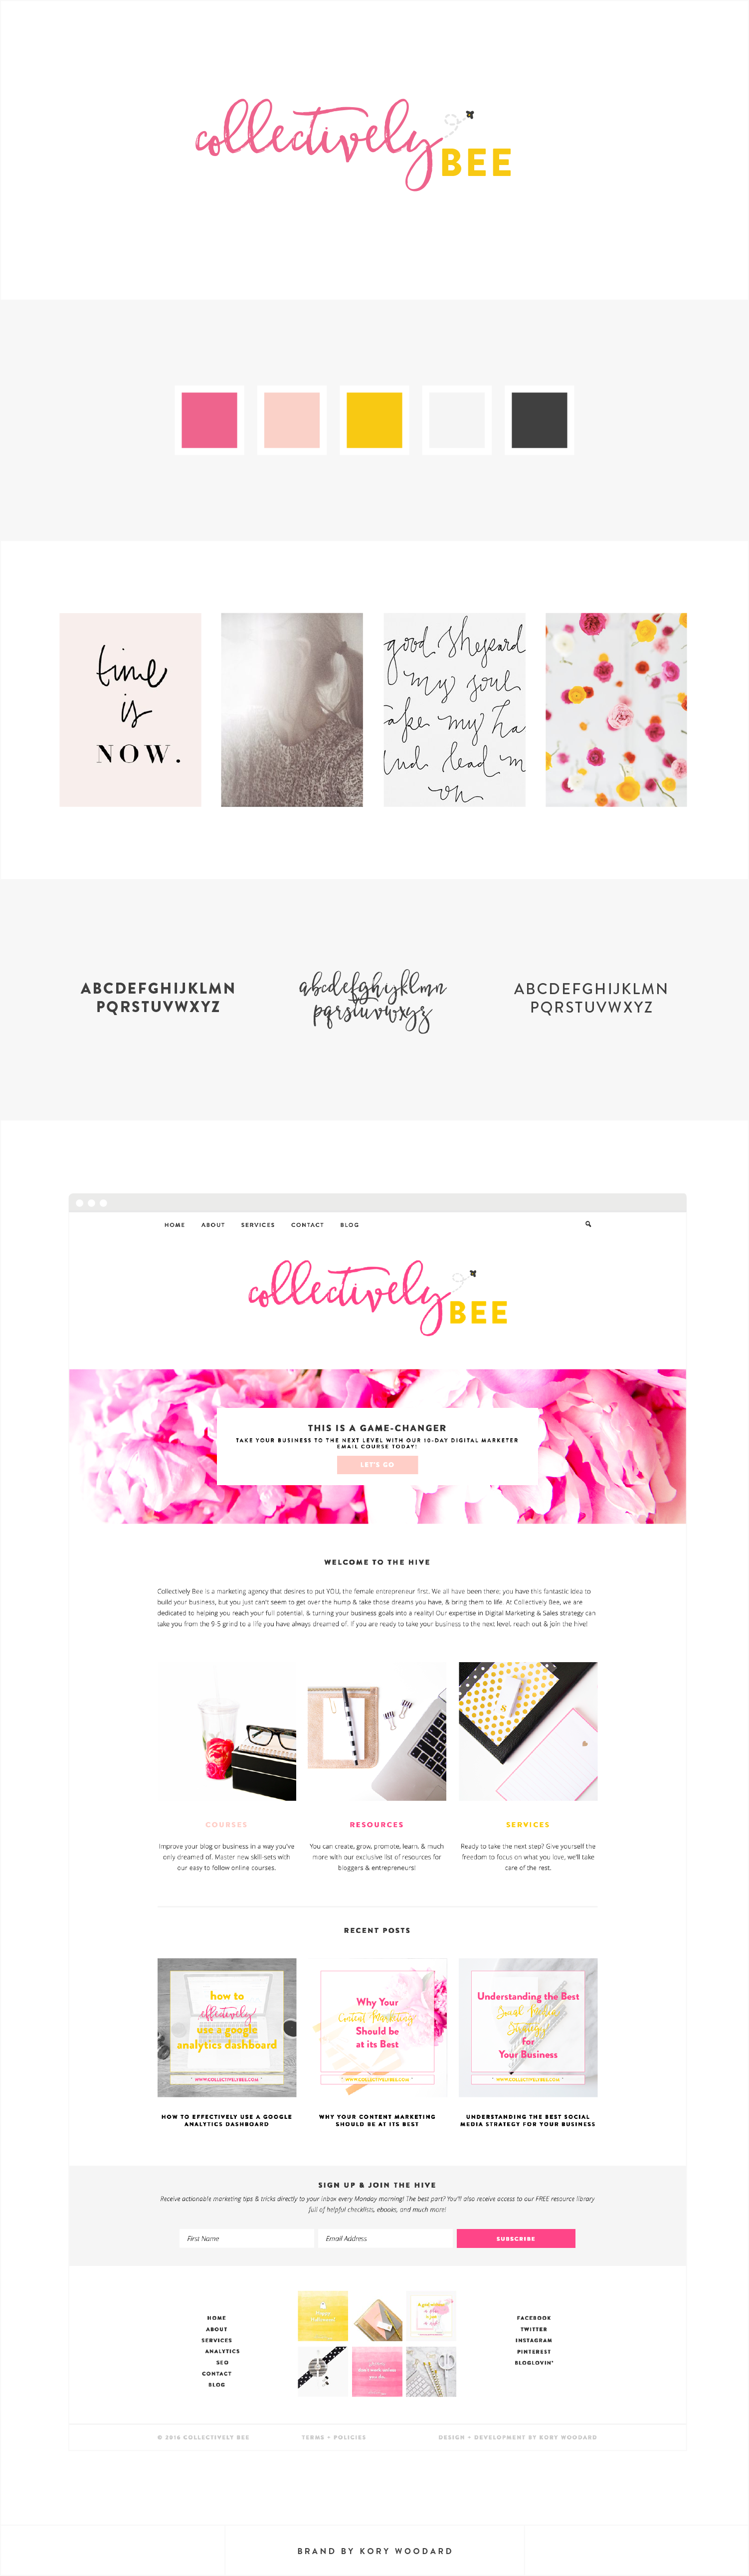 Collectively Bee - Branding + Blog Design by Kory Woodard